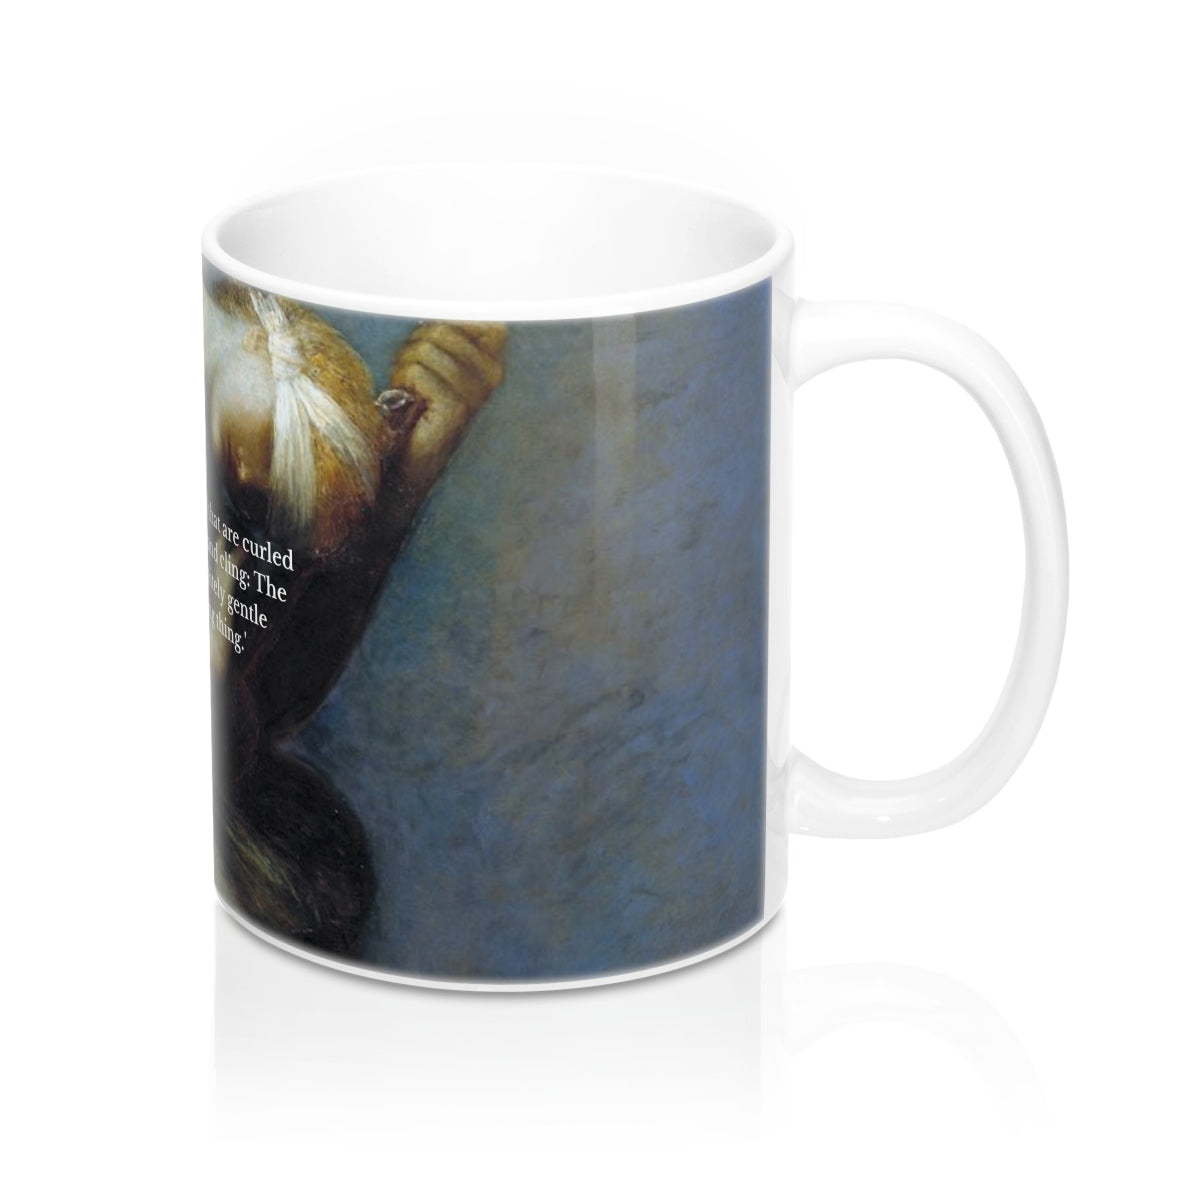 The Eliot Mug - creative writing course